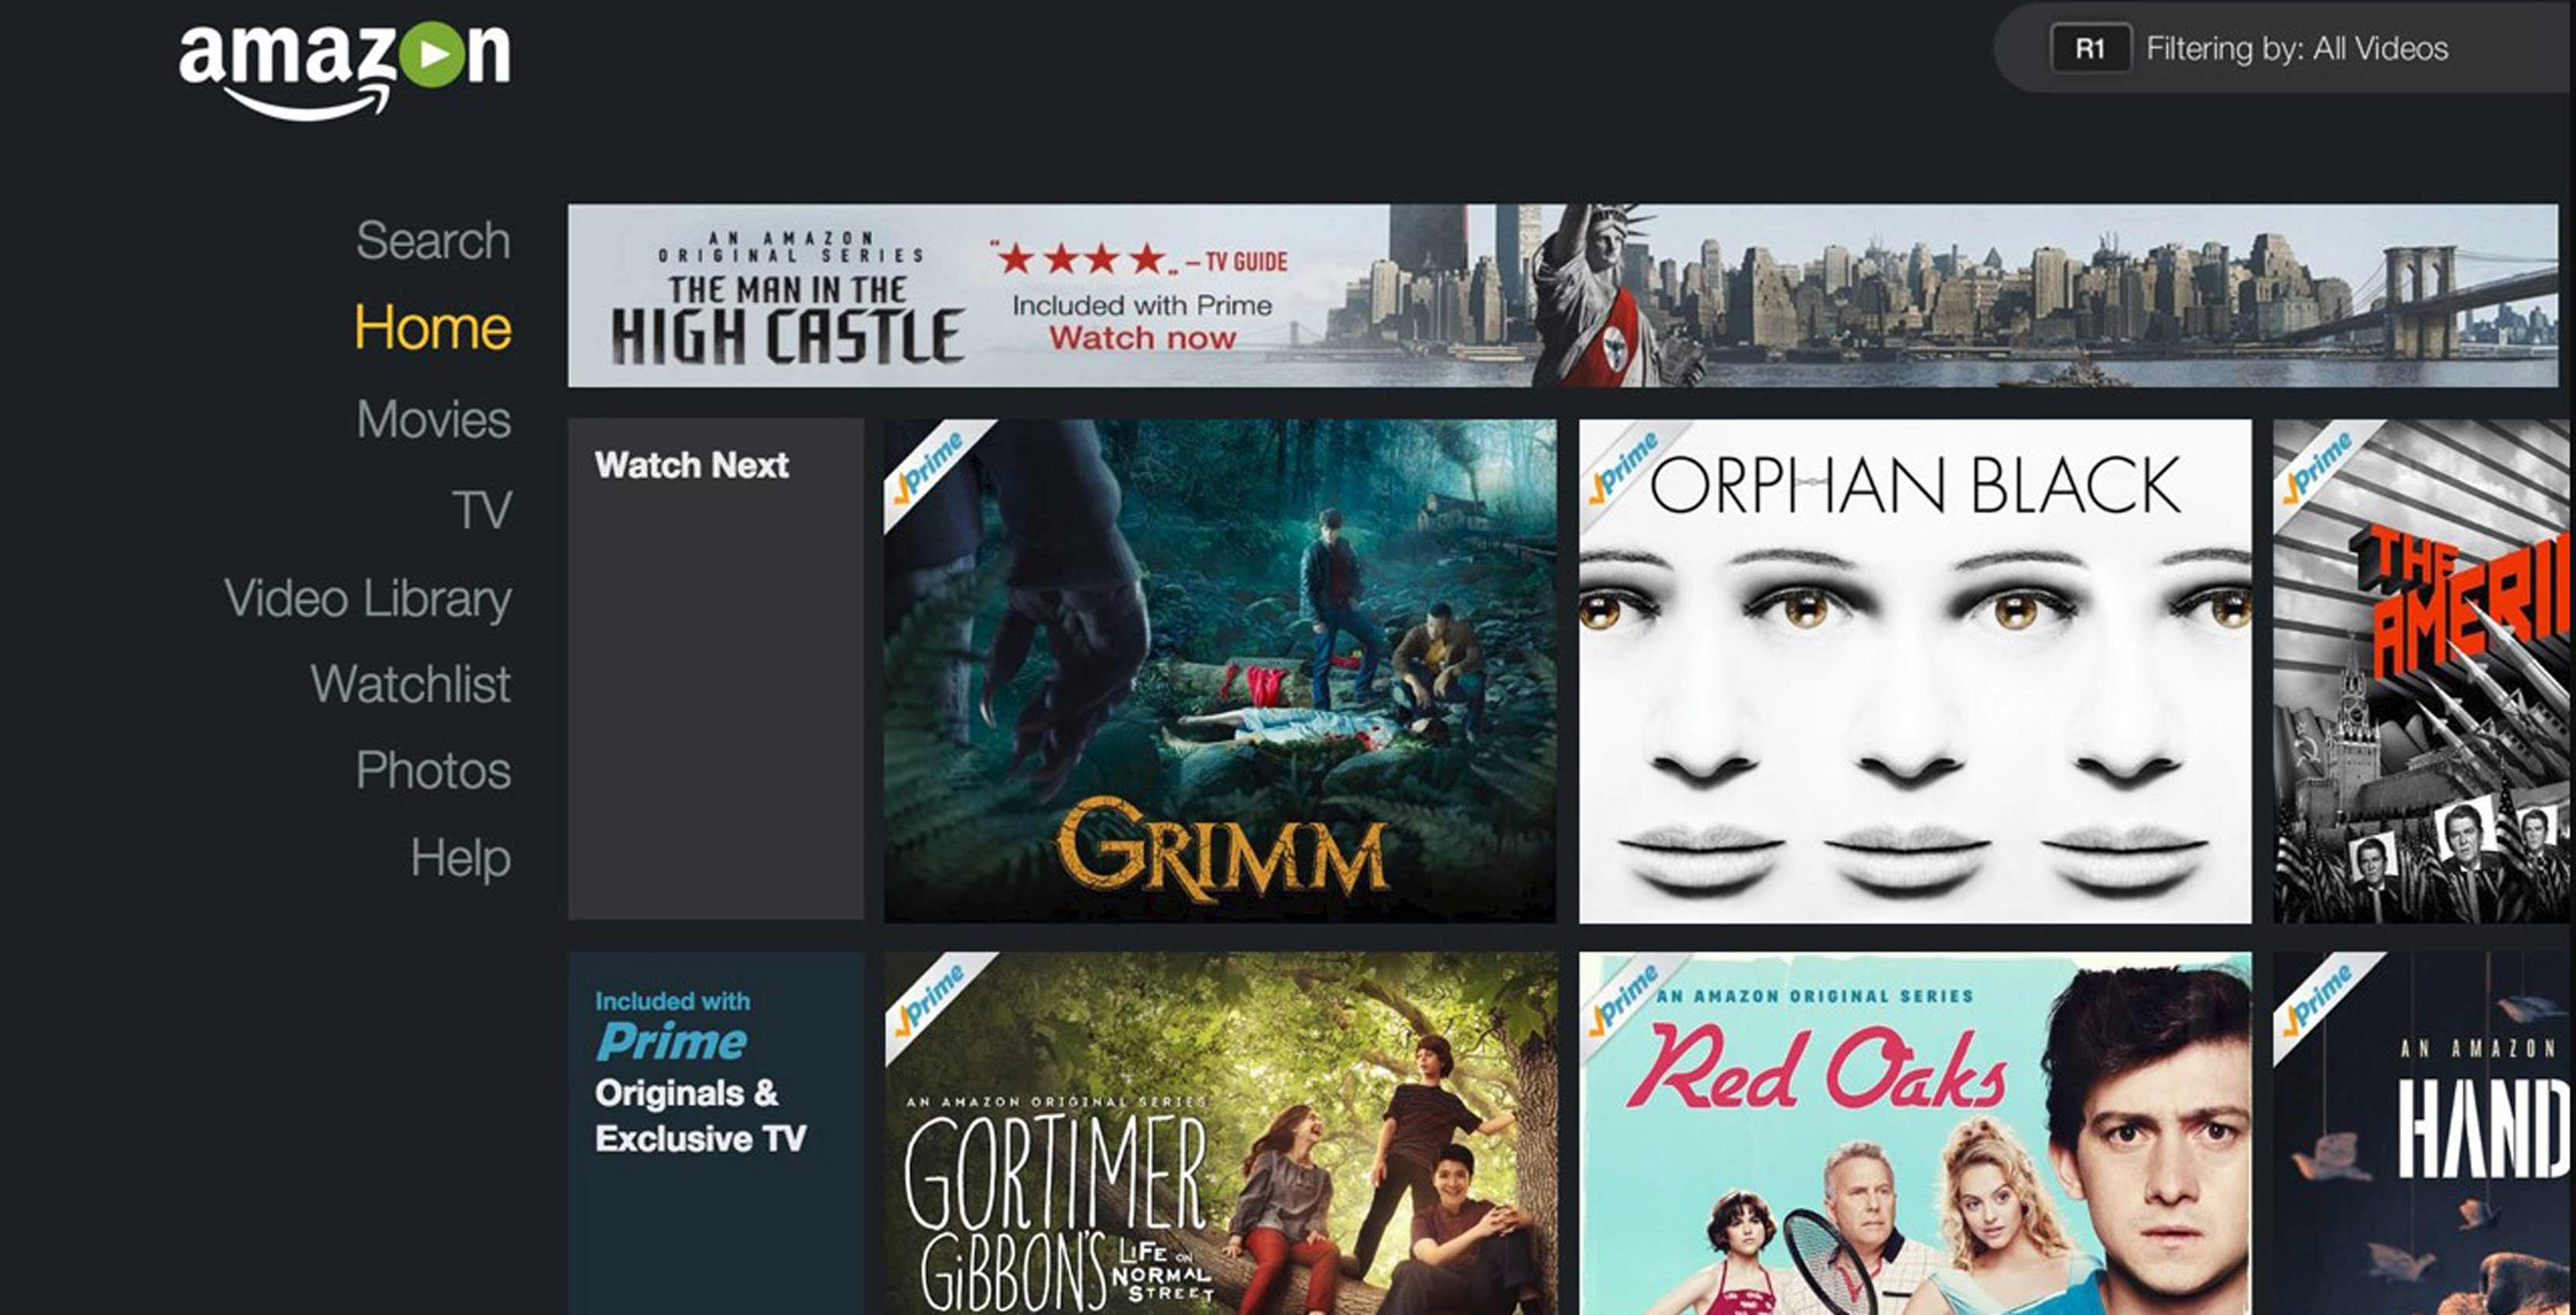 Amazon launches Prime Video PlayStation 3 and PlayStation 4 apps in